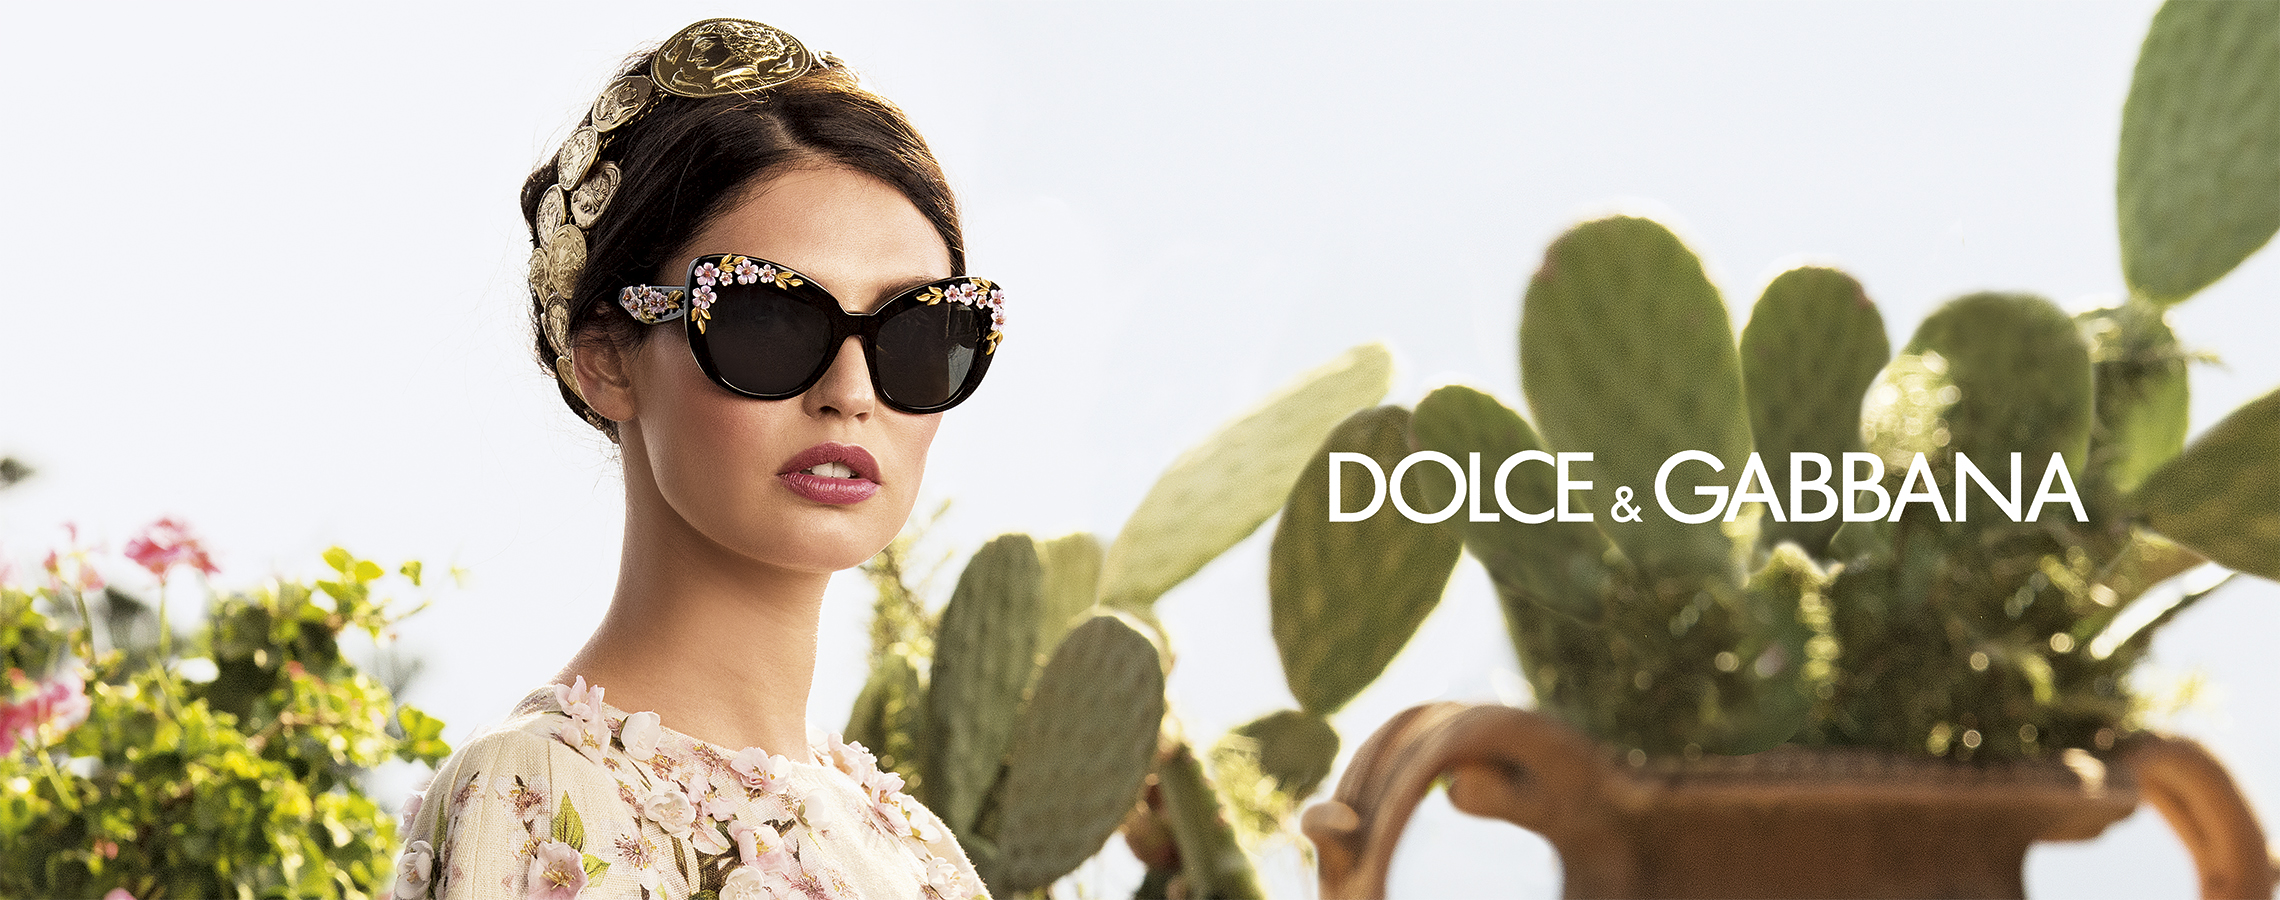 b5783a98248 Dolce   Gabbana Almond Flowers Collection - David Clulow